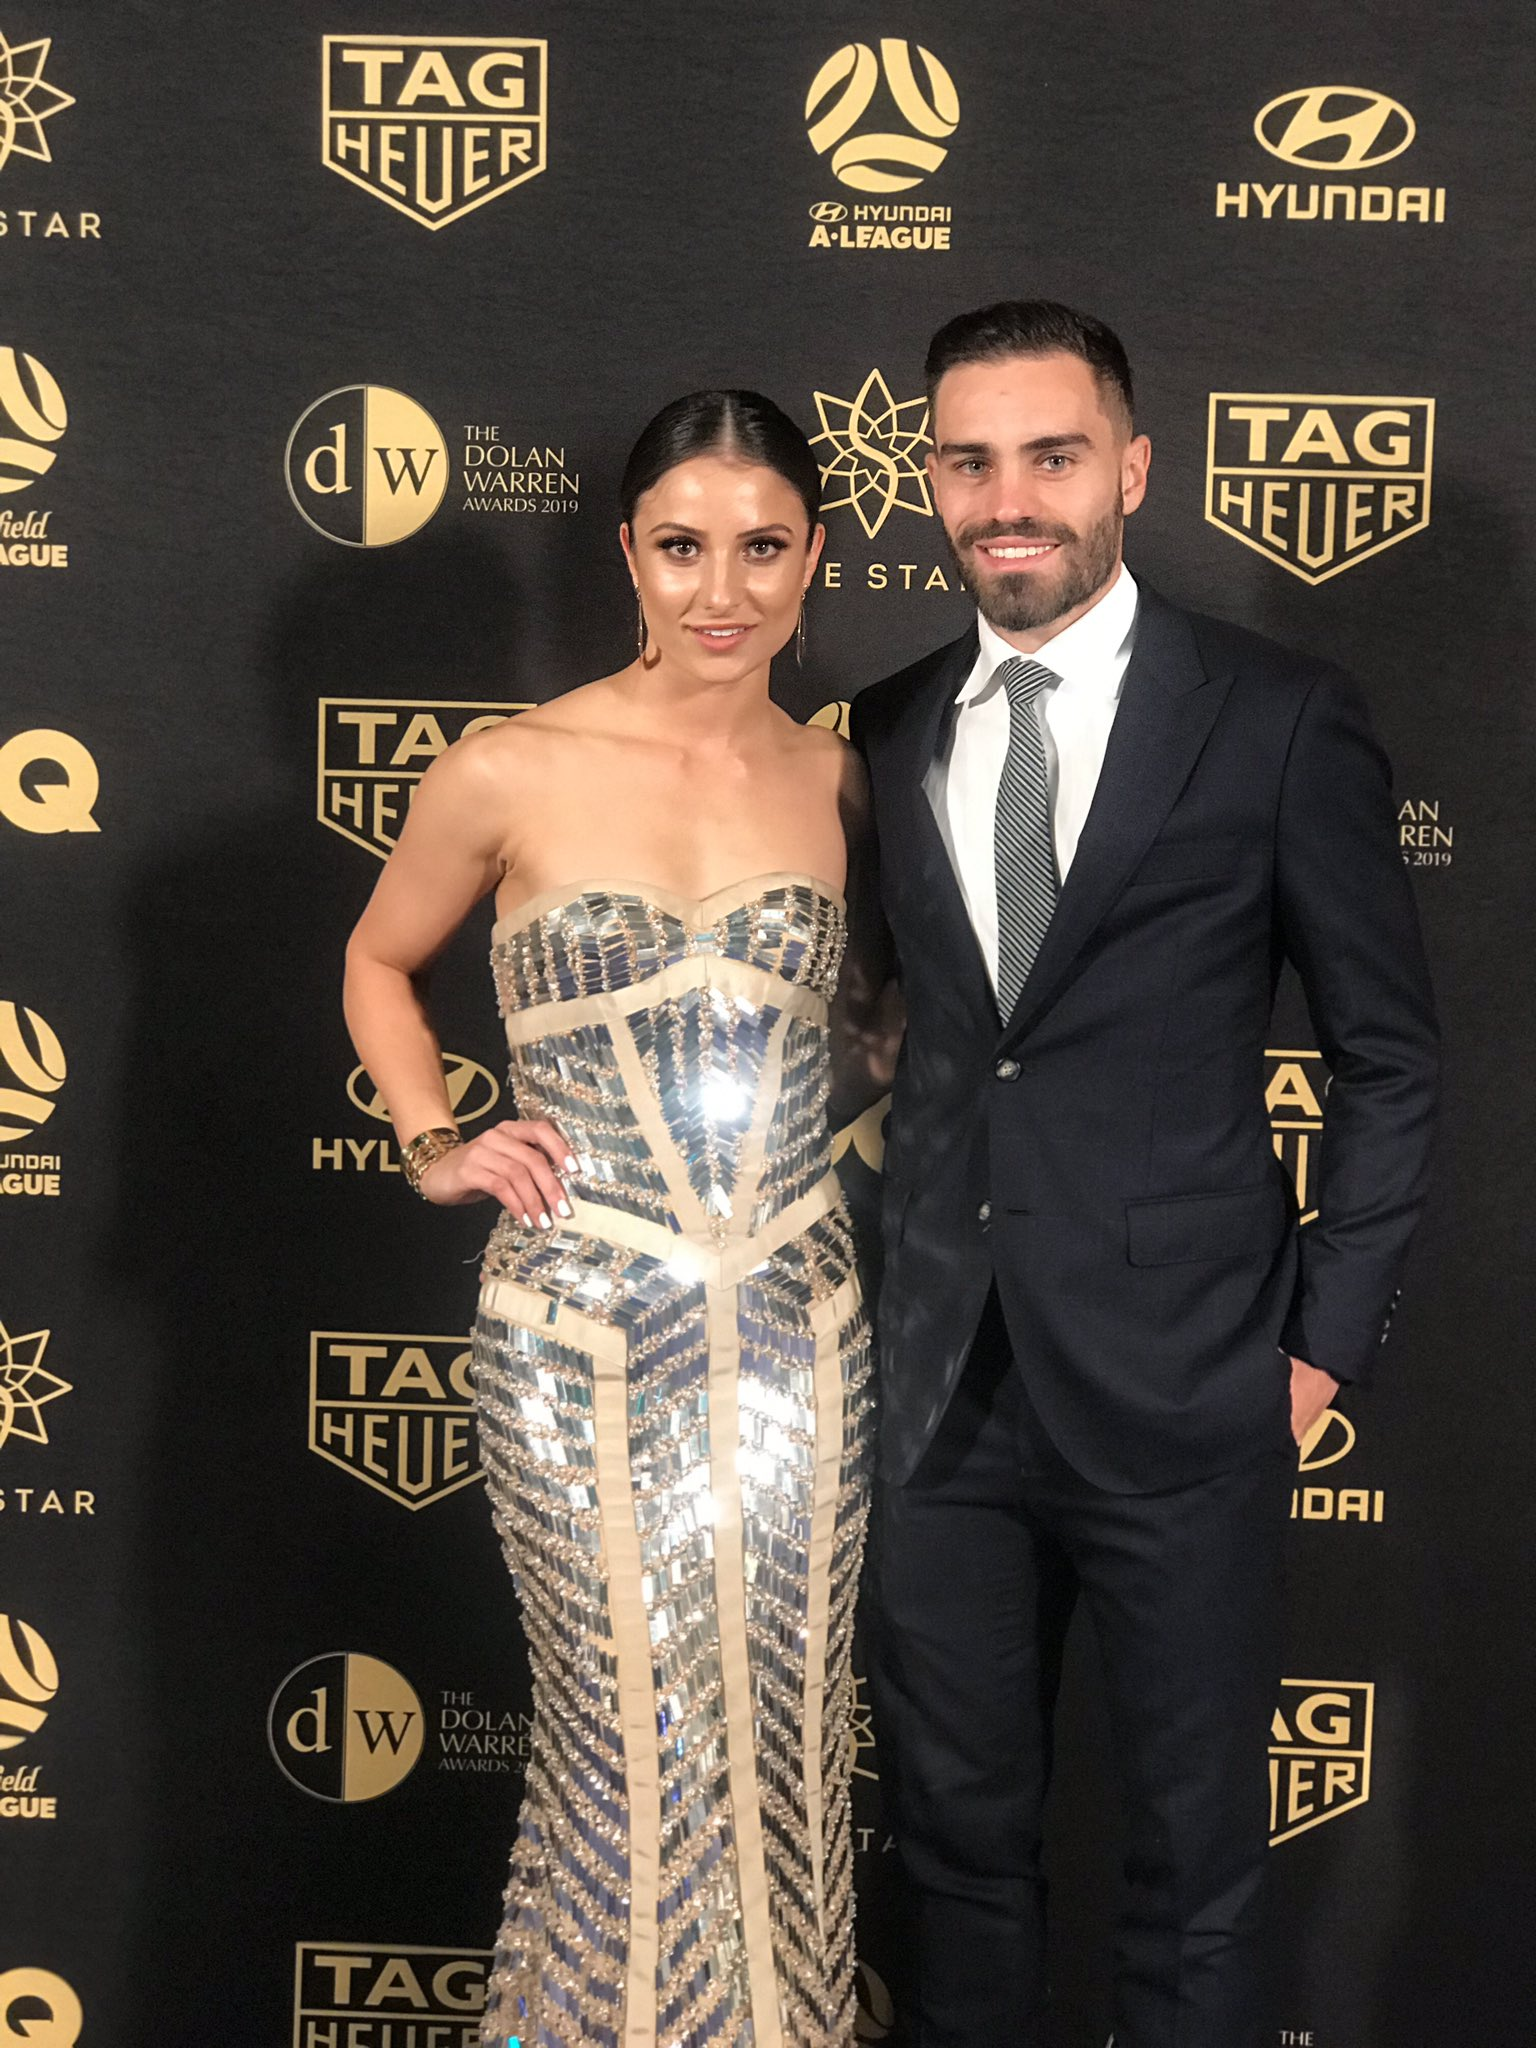 Anthony Caceres and Helen Petinos